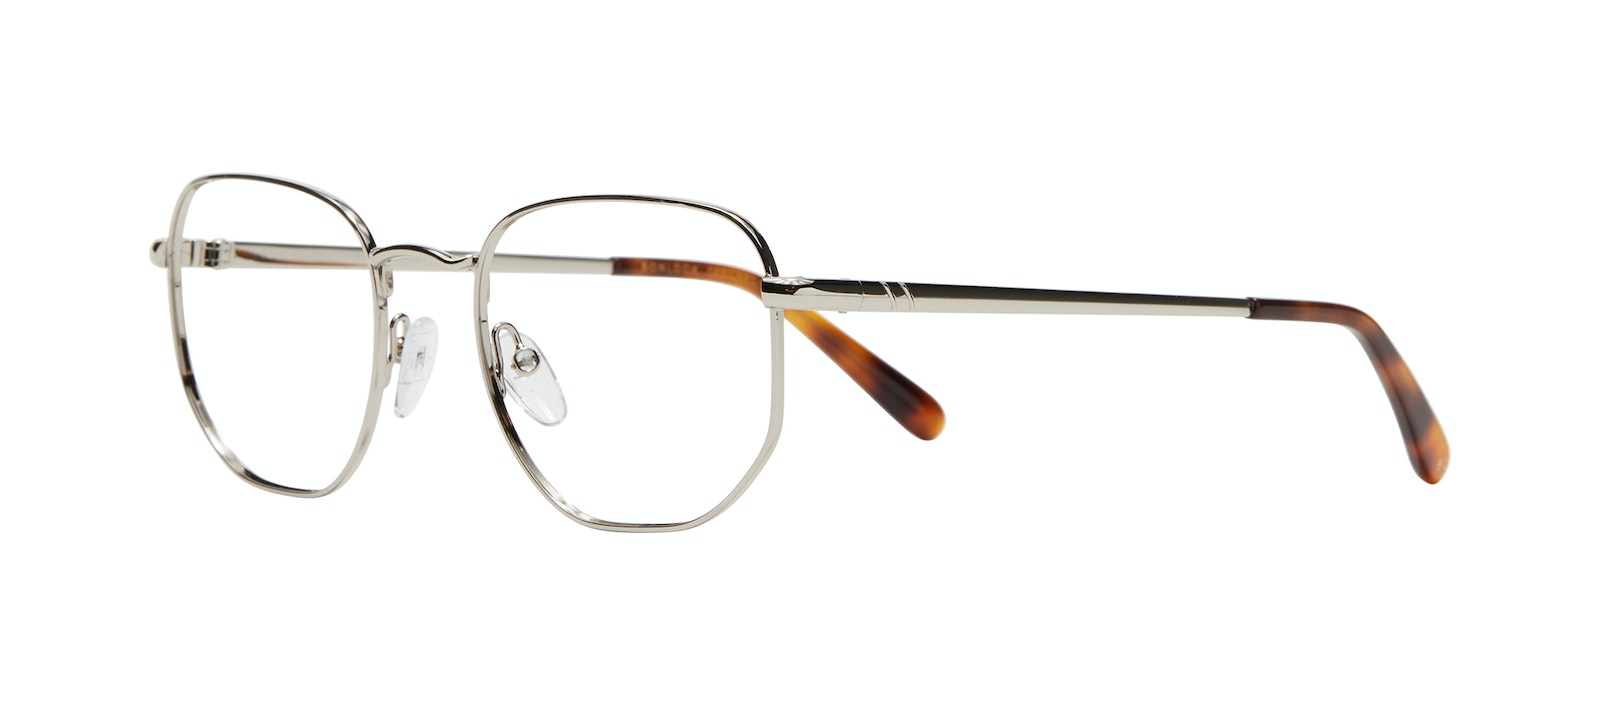 Affordable Fashion Glasses Square Eyeglasses Men Global L Silver Tilt